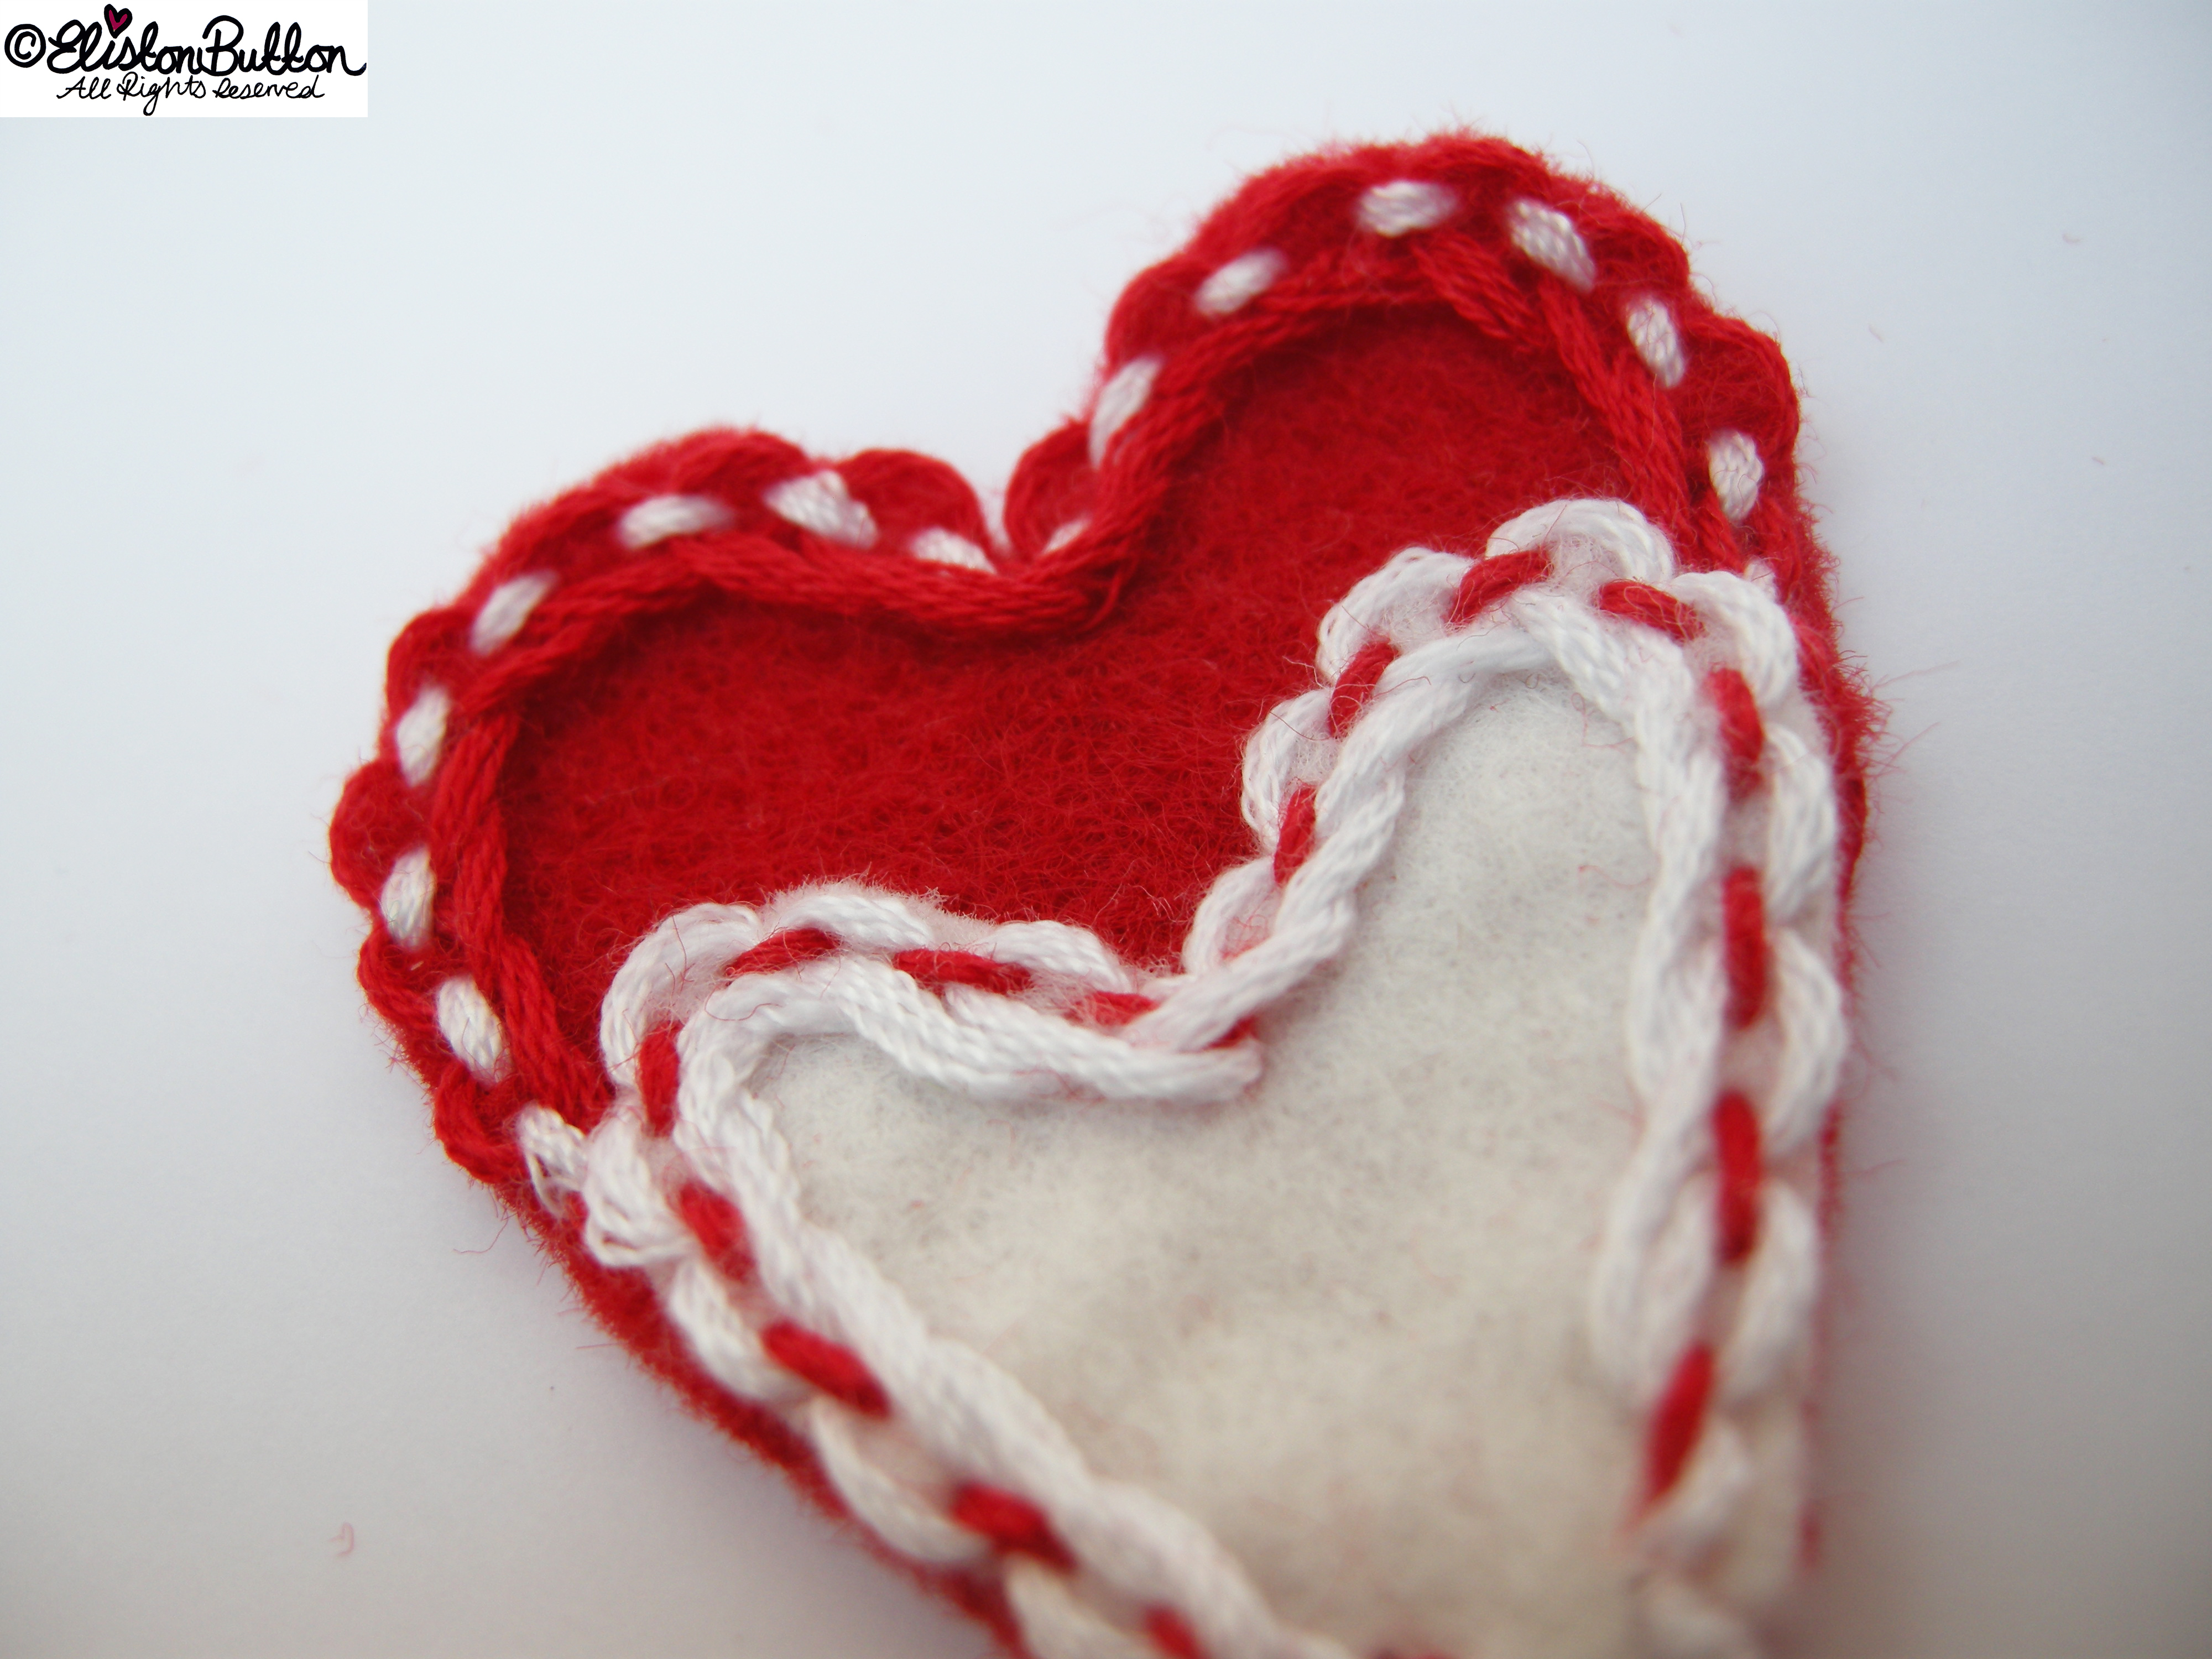 Whimsical Lace-Like Embroidery Stitches on Red and White Felt - 27 Before 27 - Hello Lover... at www.elistonbutton.com - Eliston Button - That Crafty Kid – Art, Design, Craft & Adventure.